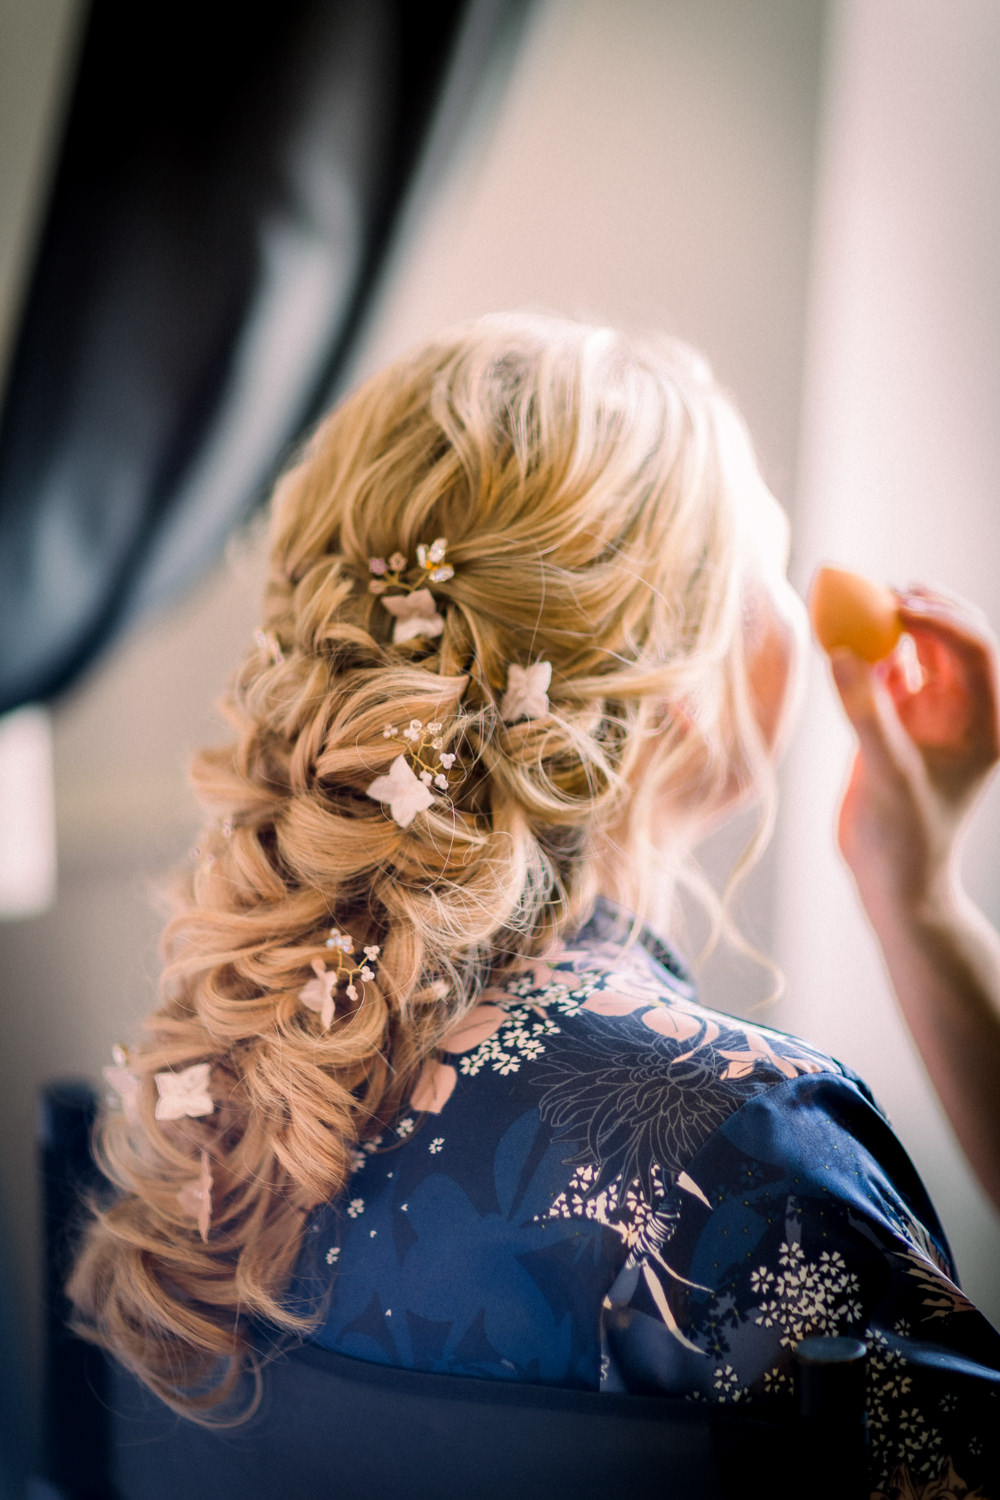 Hair Bride Bridal Style Up Do Pretty Rustic Waves Curls Flowers Tortworth Court Wedding Sanshine Photography